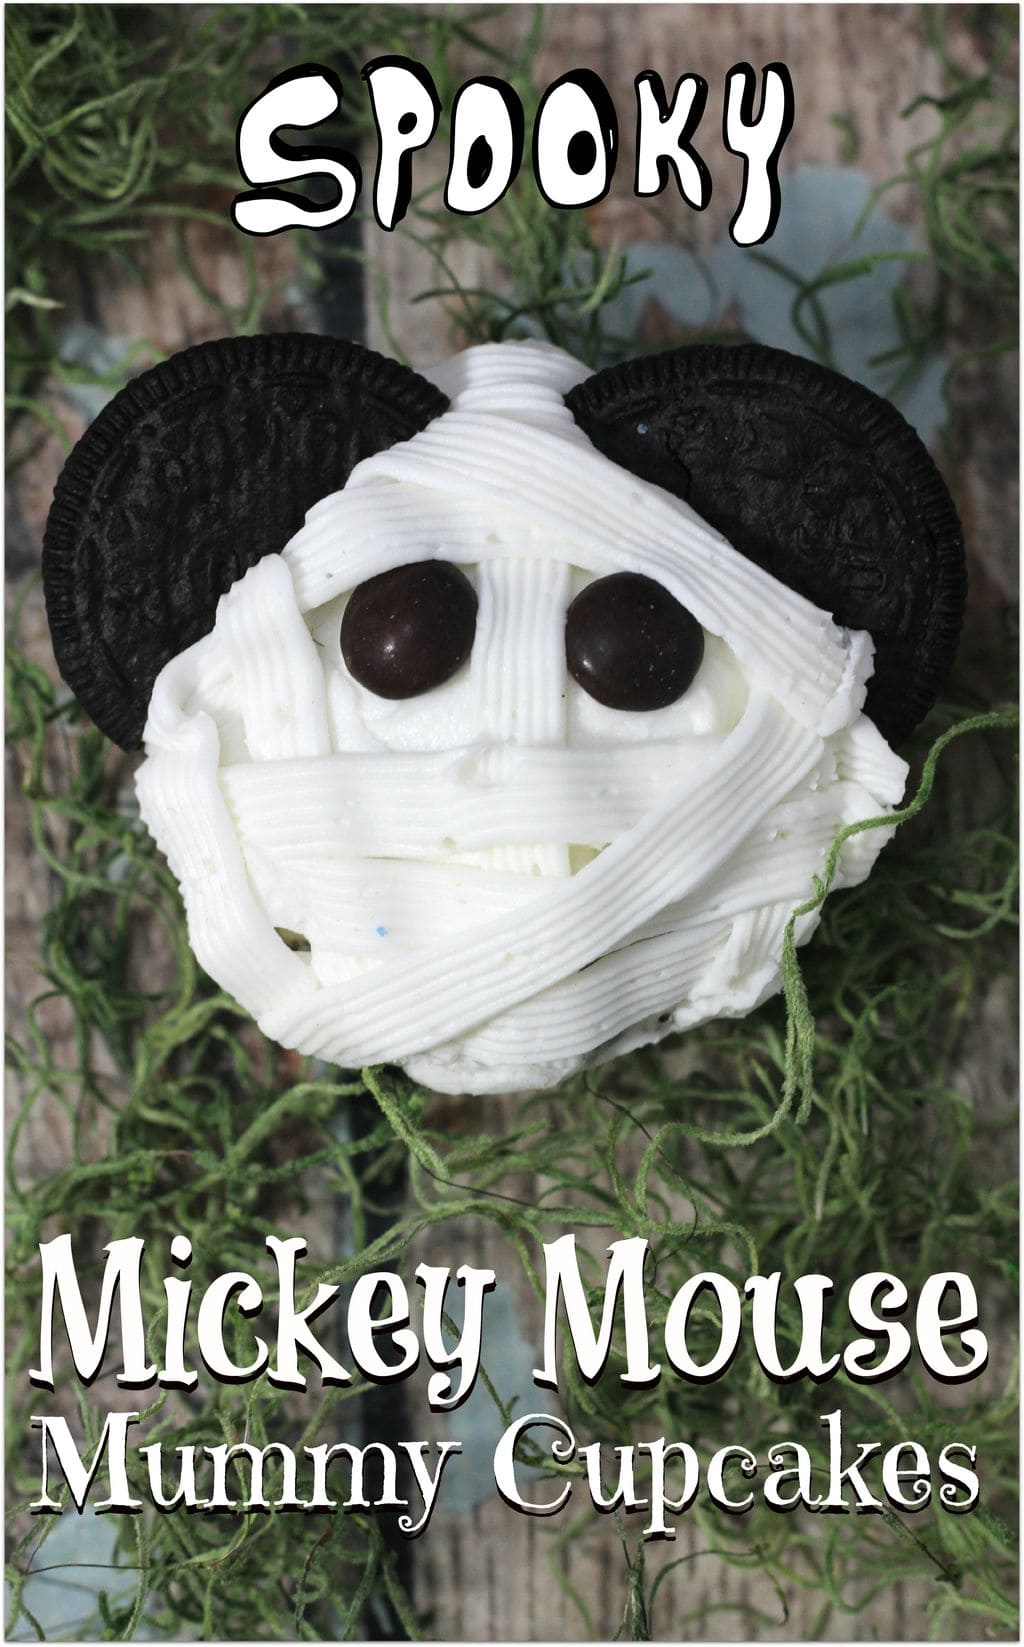 These Mickey Mouse Mummy Cupcakes are the perfect dessert to bring to a Halloween party! Everyone loves Mickey, and this dessert recipe is so easy! Let everyone else bring appetizers and snack food, and you bring this delicious dessert!